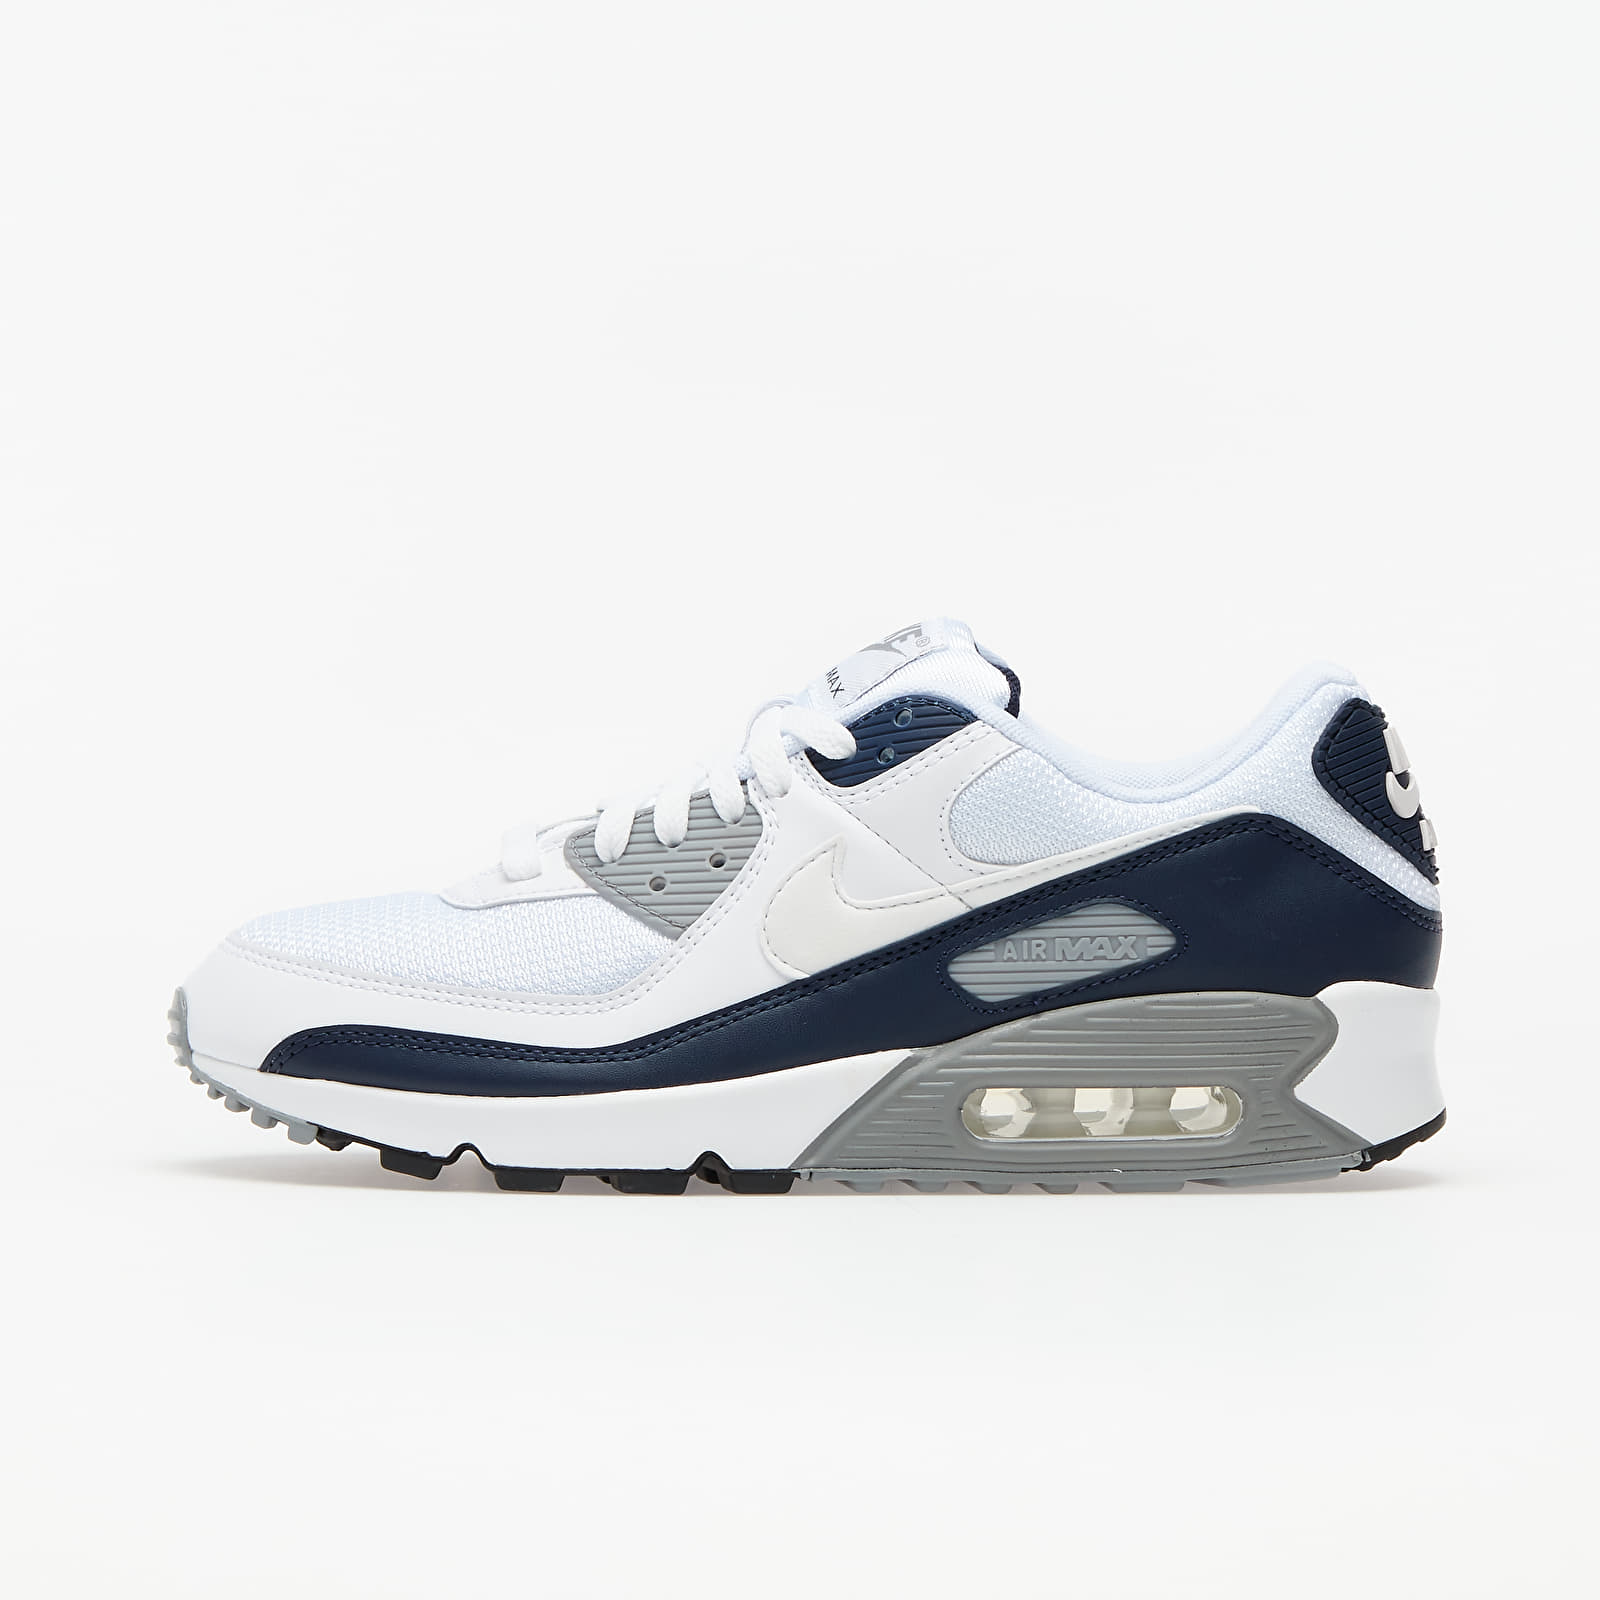 Nike Air Max 90 White/ White-Particle Grey-Obsidian CT4352-100